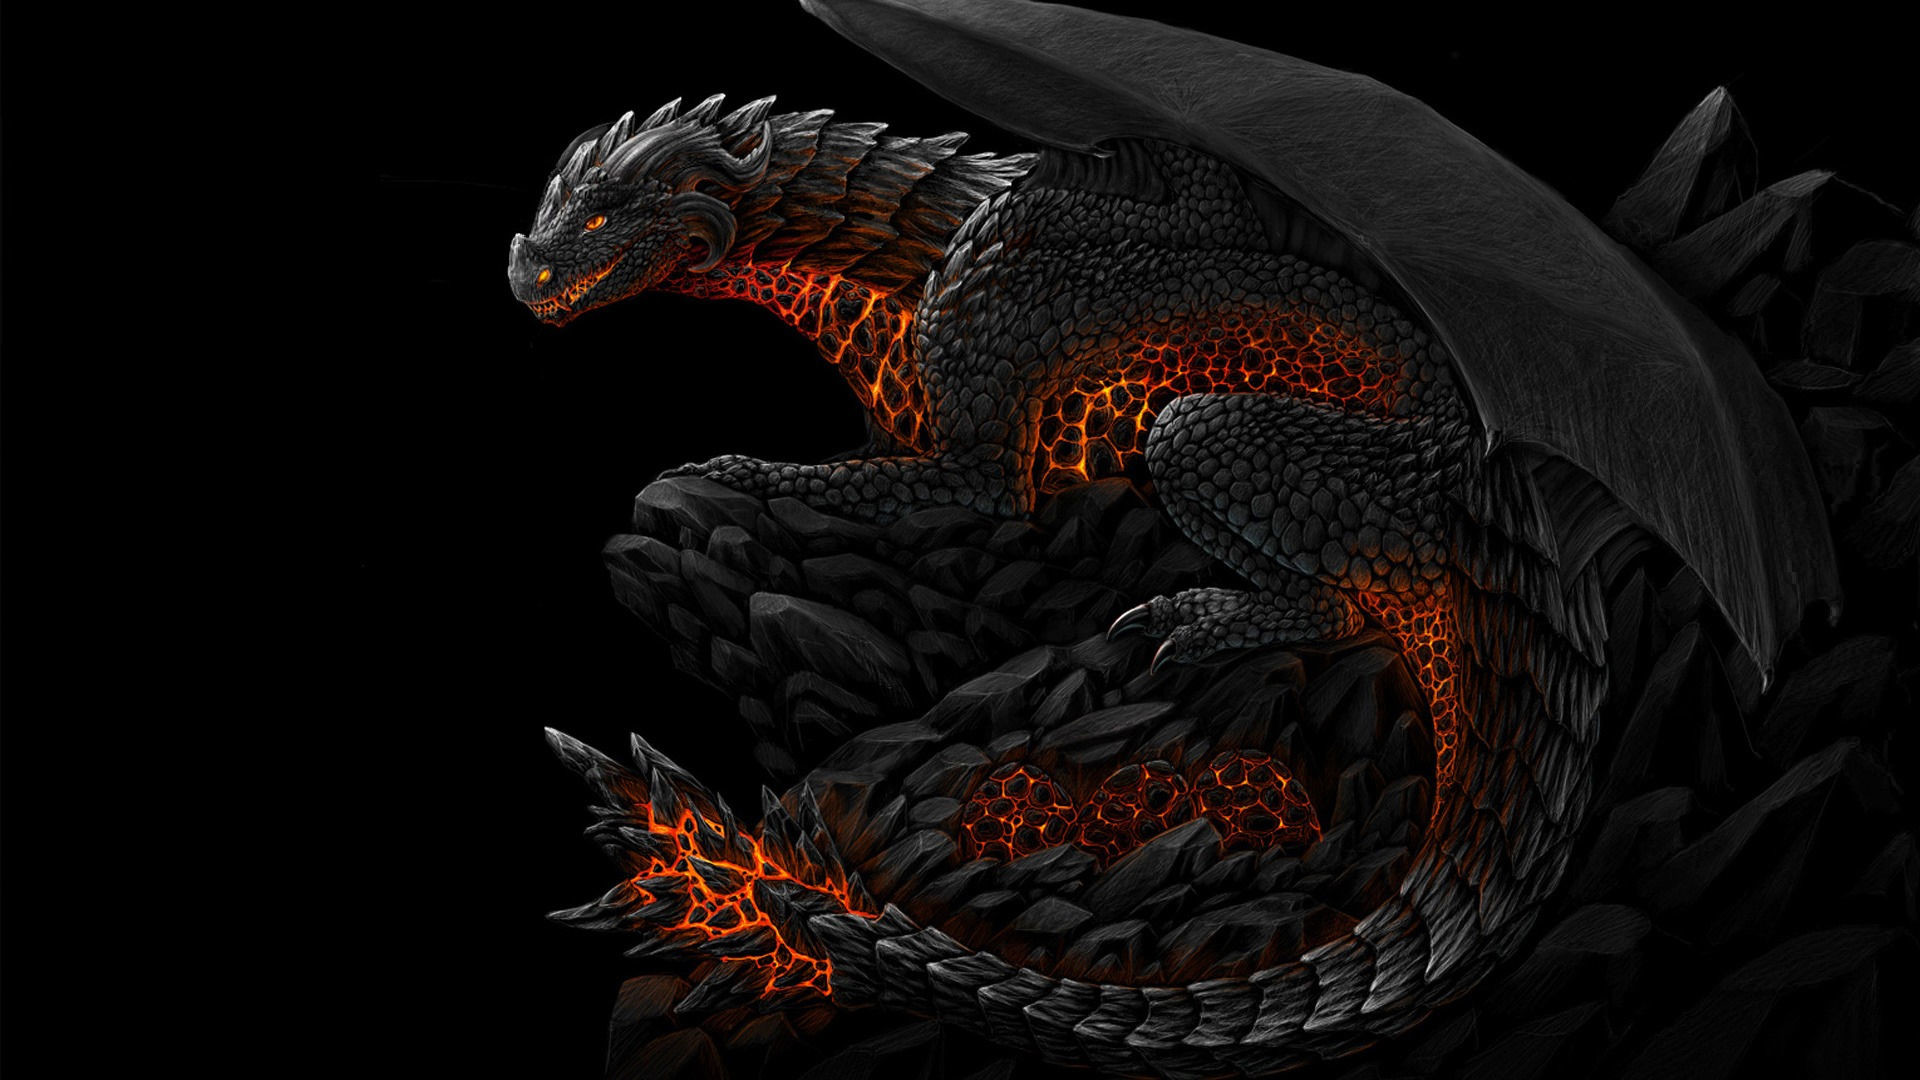 3D Dragon Wallpapers  71  background pictures  1920x1080 Dragon S 3d Wallpapers For Iphone Is Cool Wallpapers